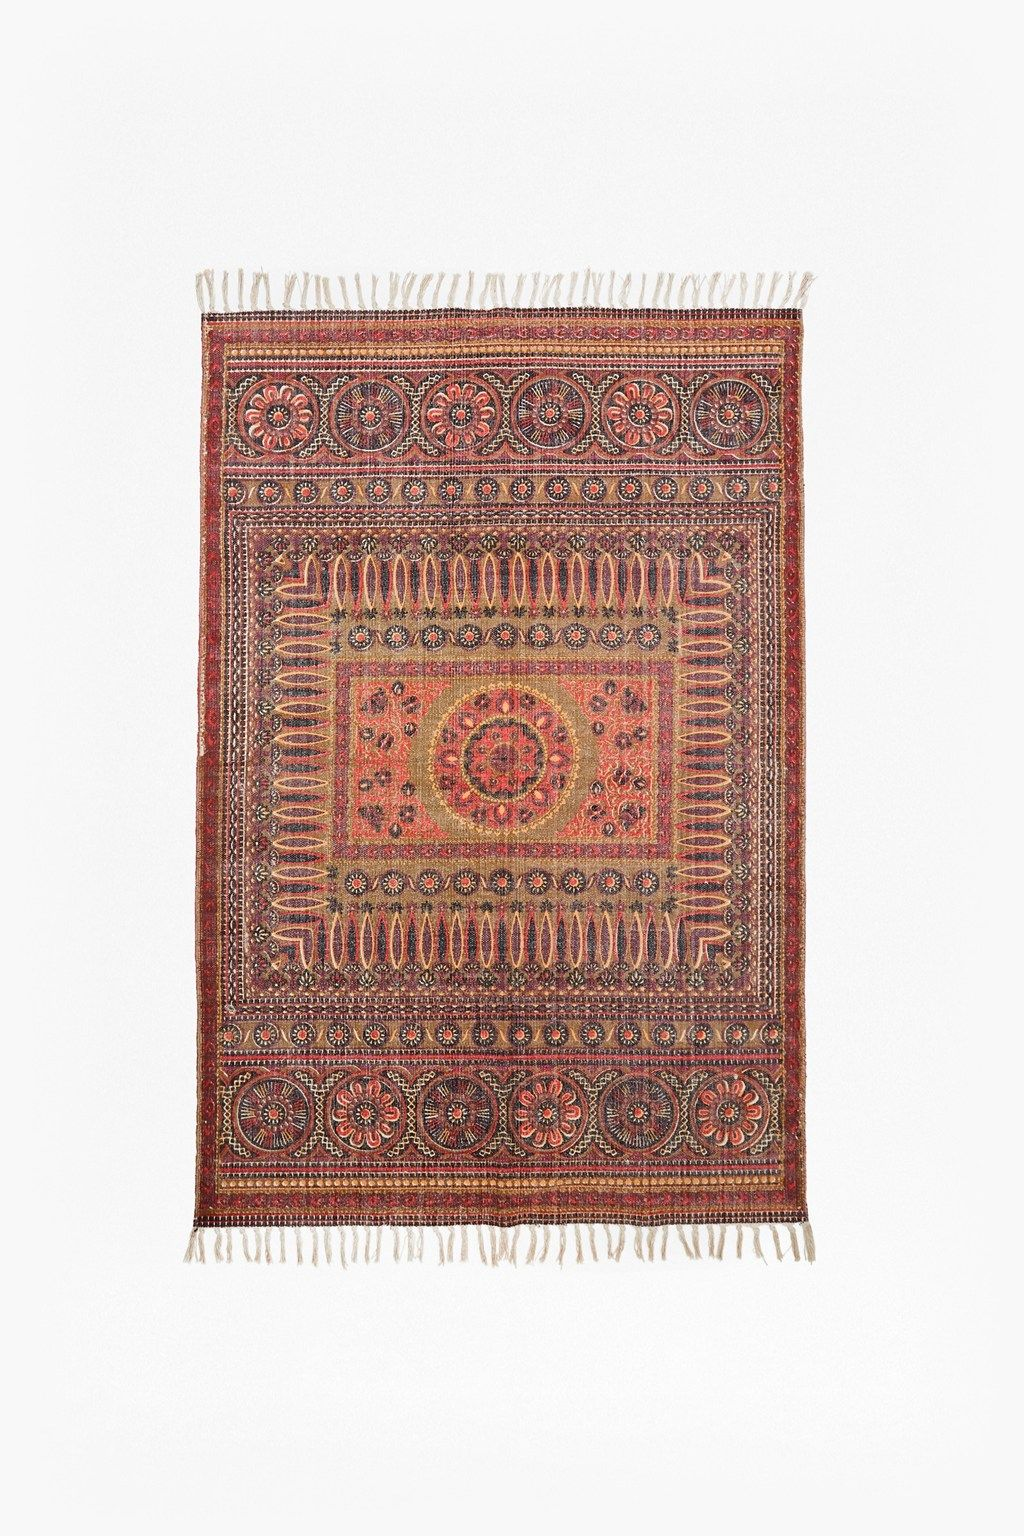 Ancient Banu Rug Rugs And Runners French Connection Rugs Rug Runner Floor Rugs